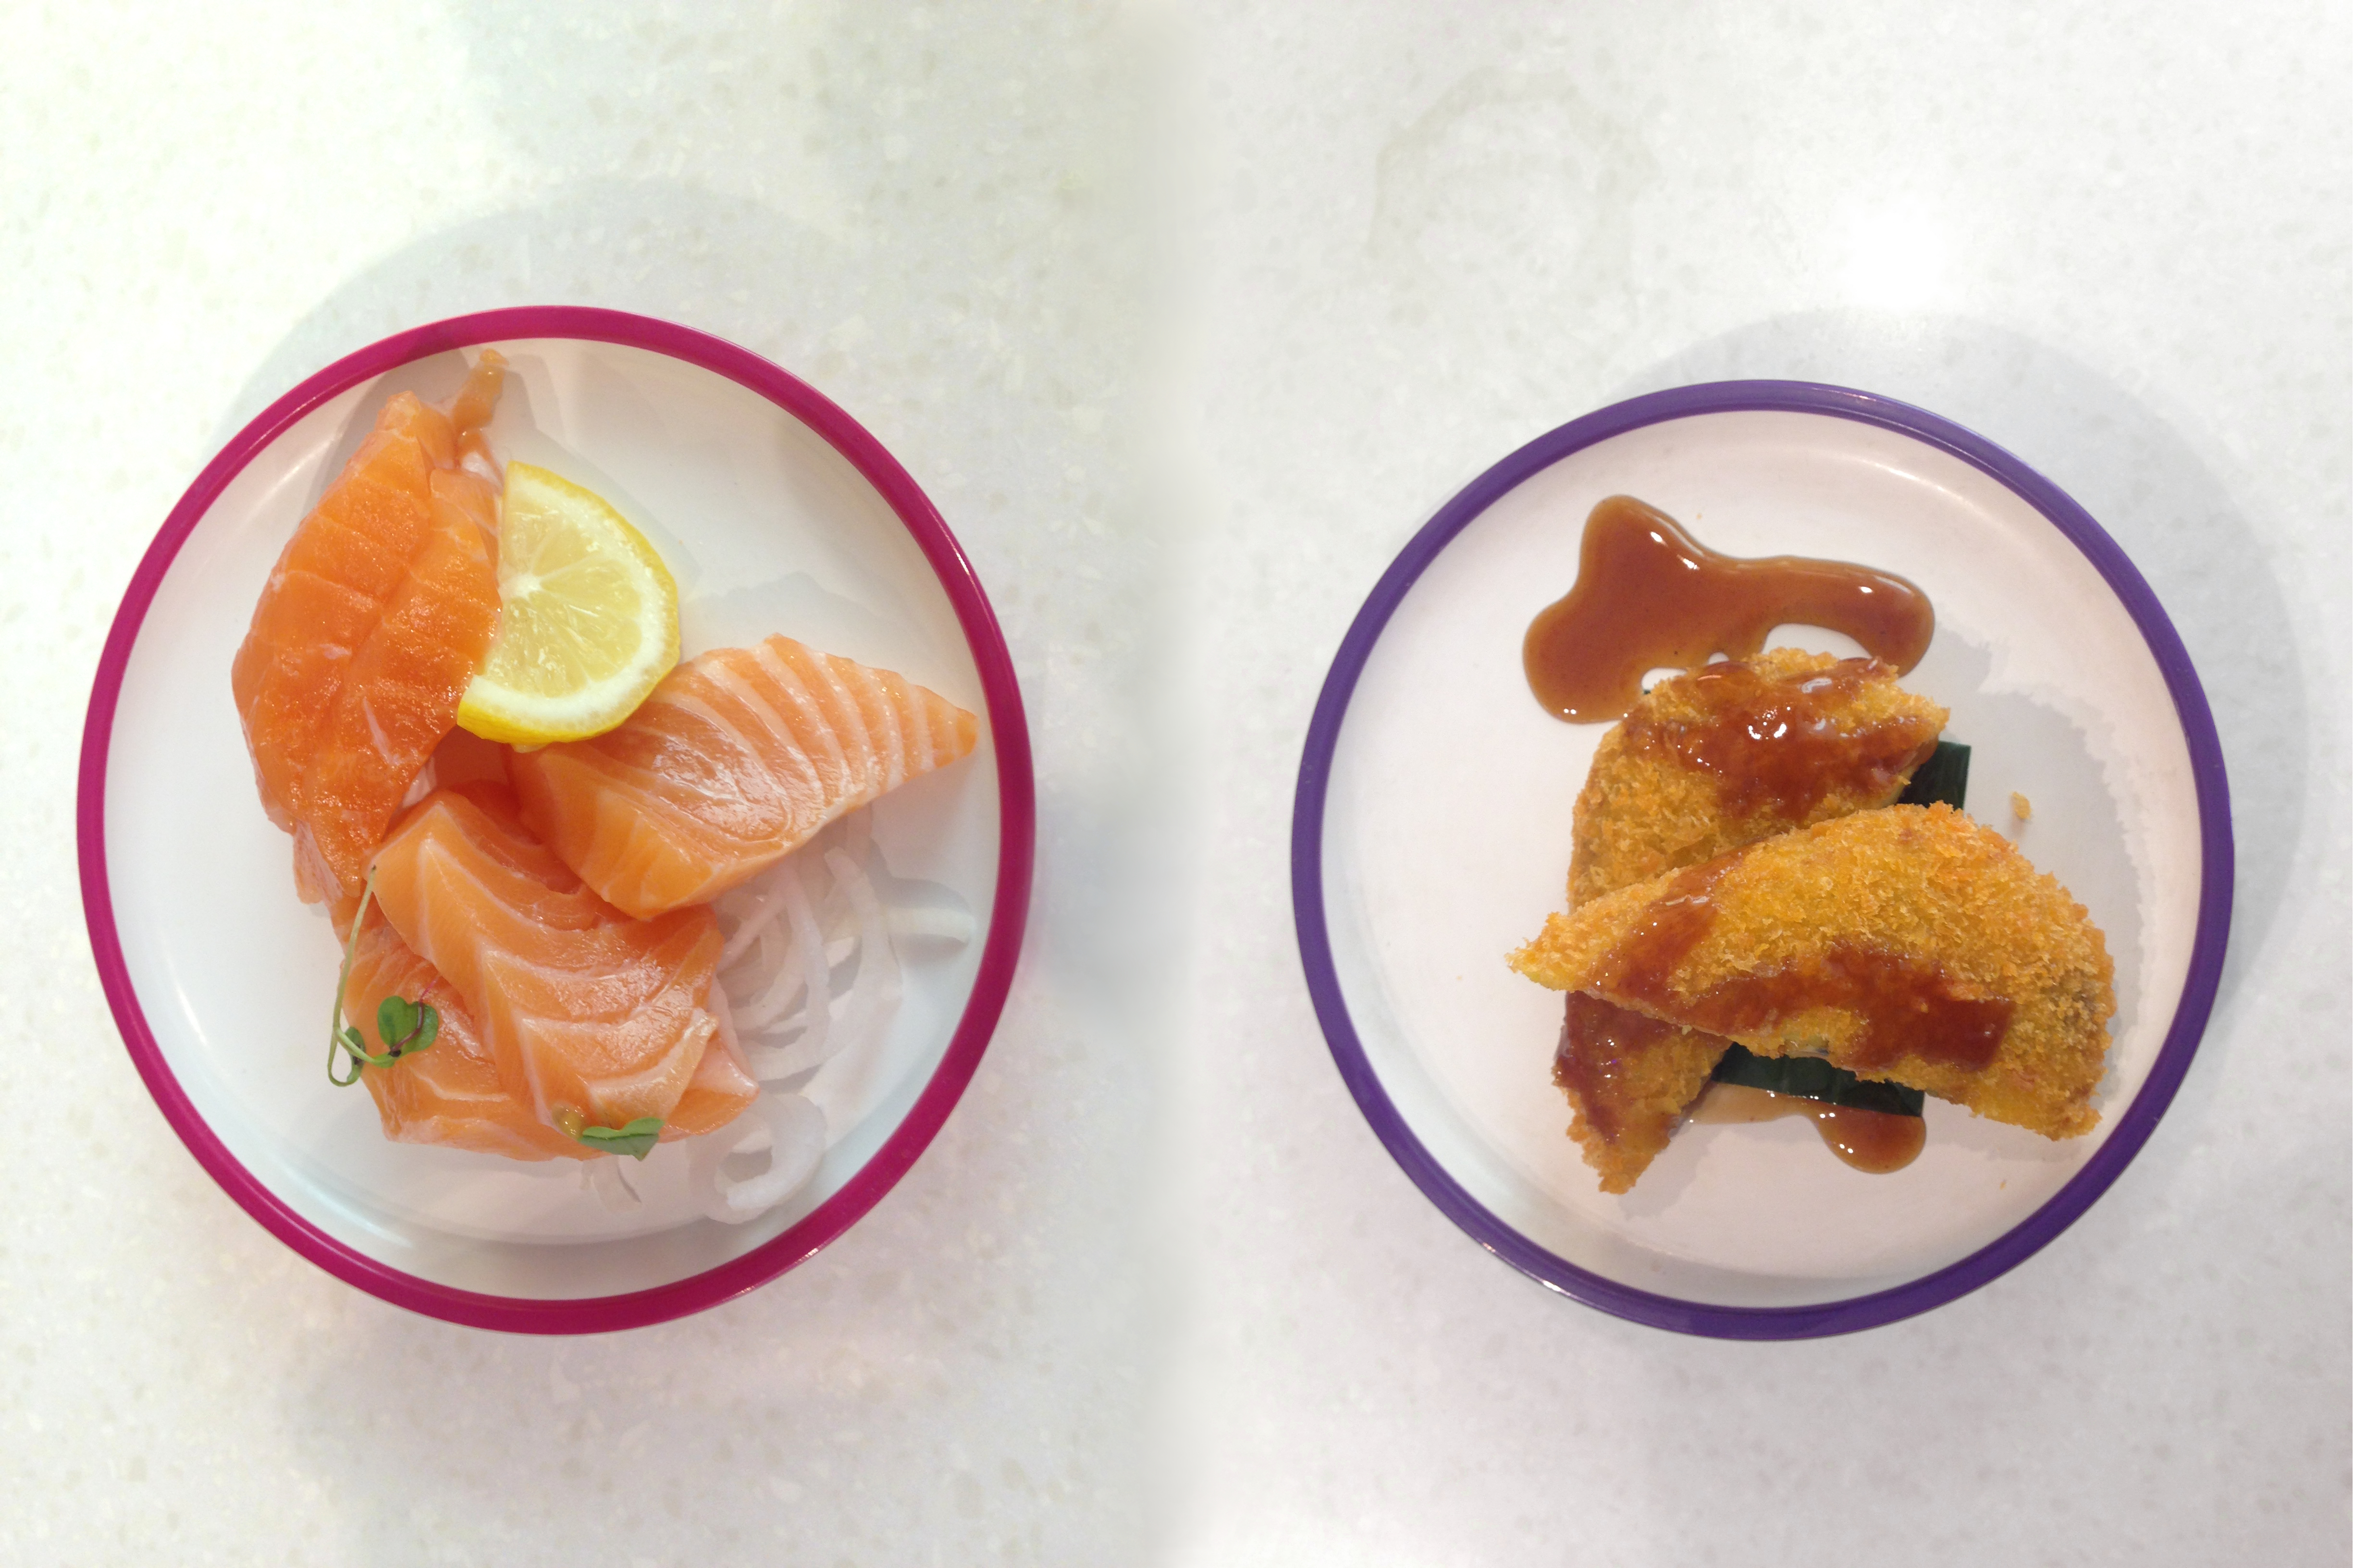 UK First as 'Shuttle' Waiter is Launched at Oxford Yo! Sushi